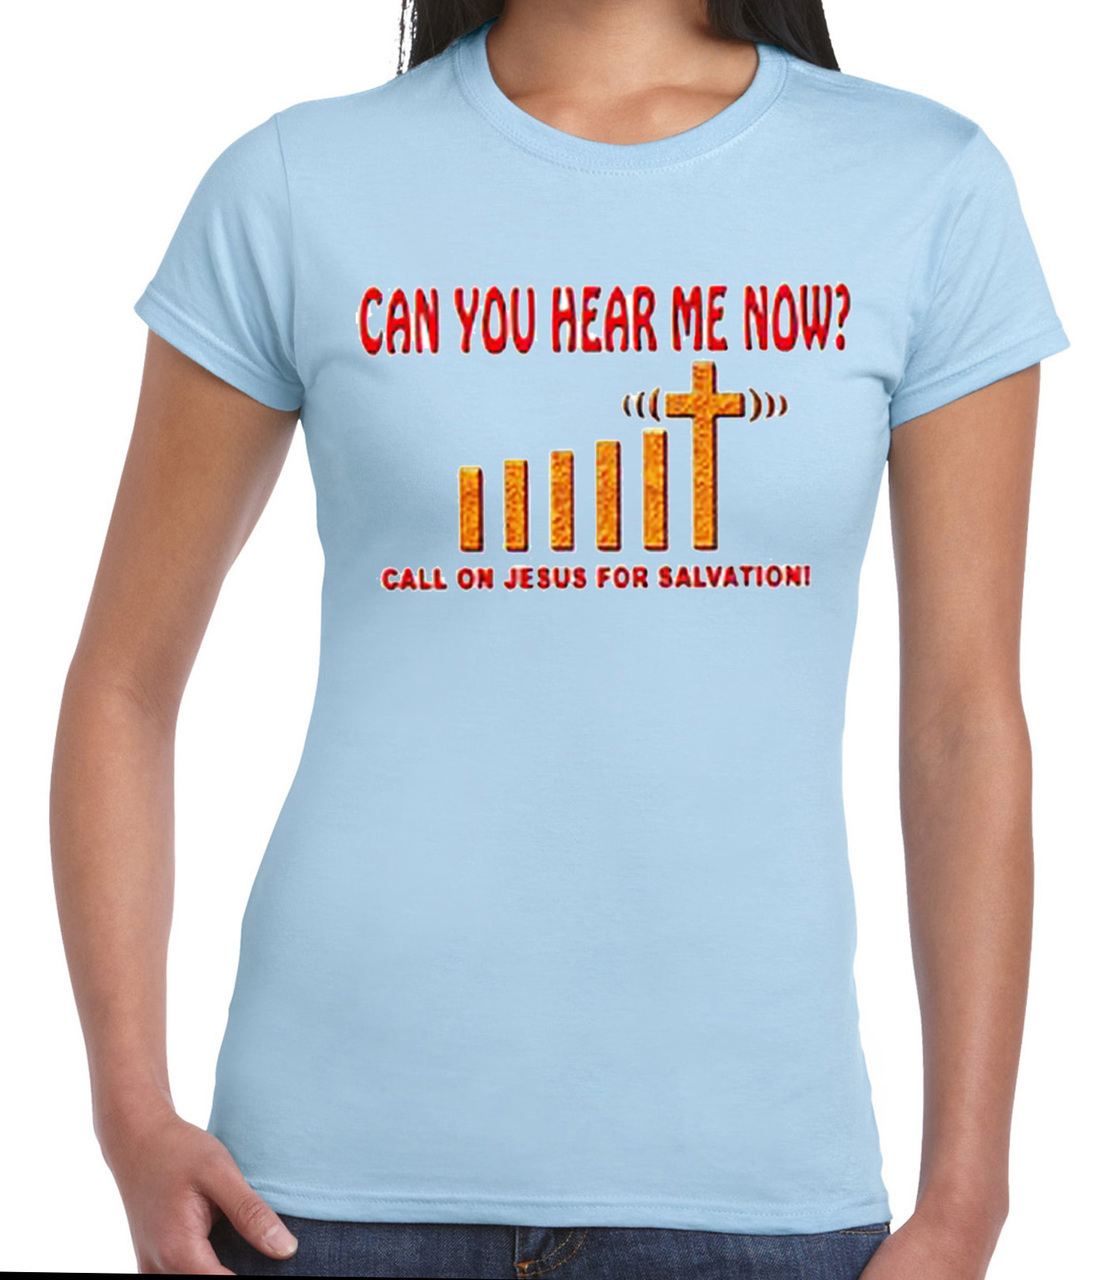 Can You Hear Me Now? T-Shirt